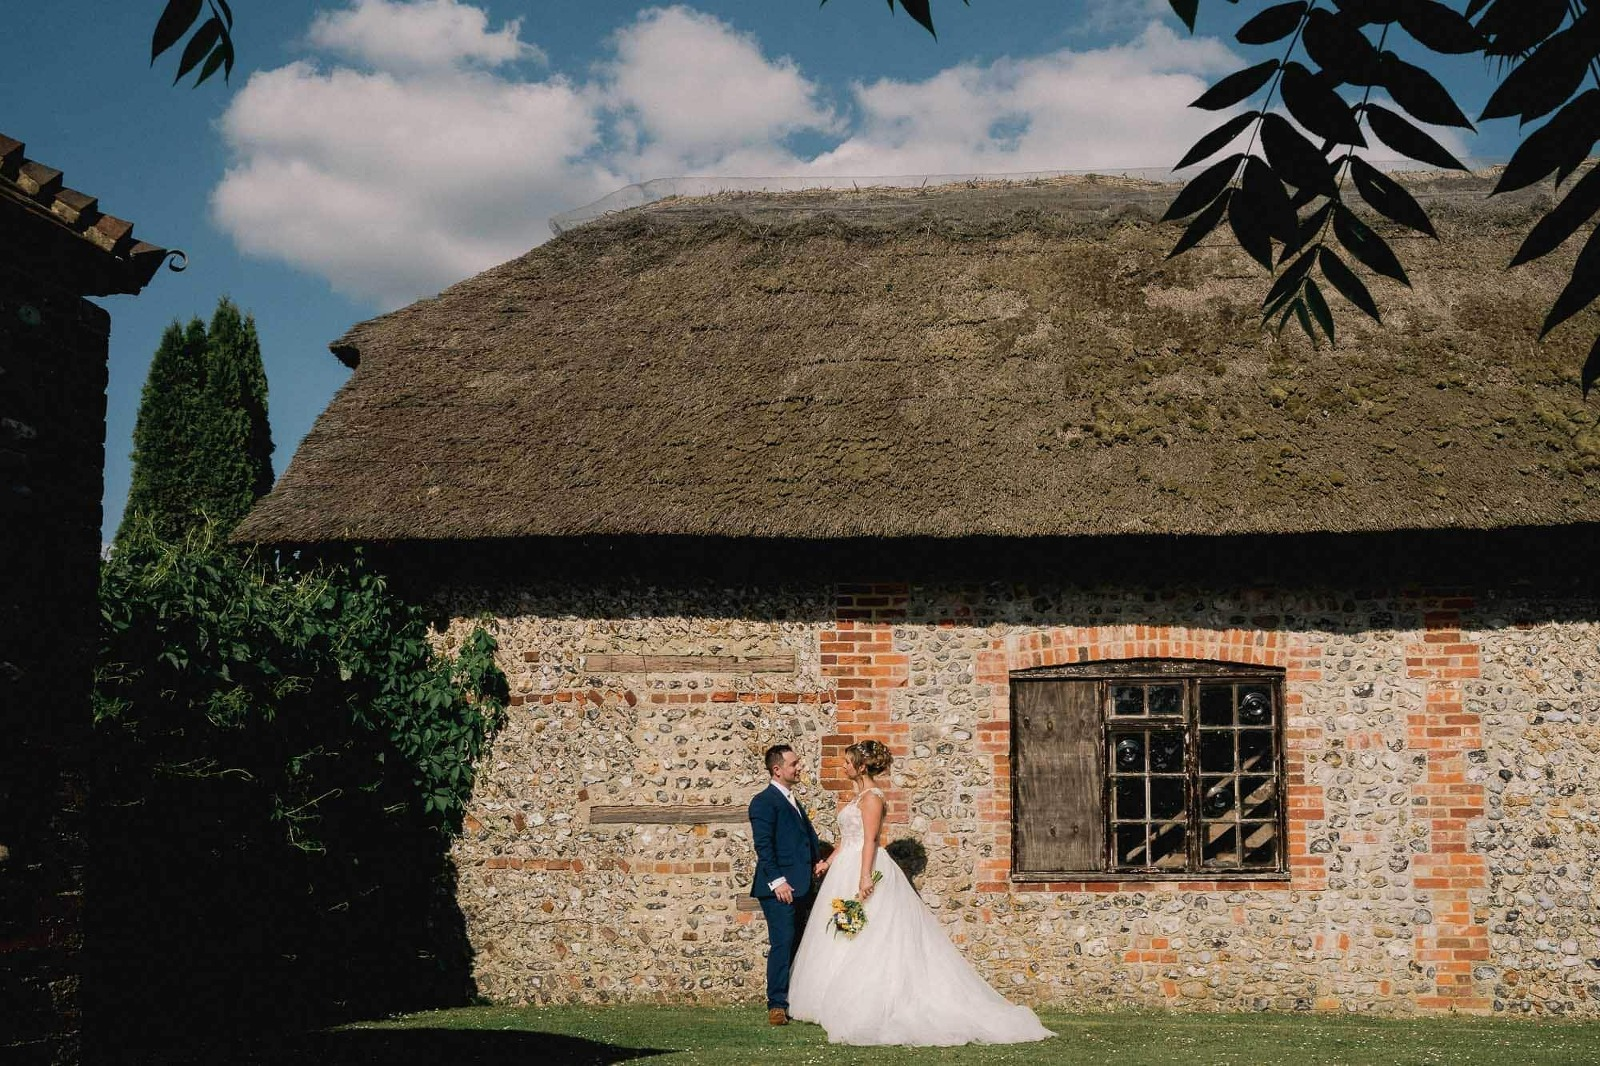 Selden Barns Wedding Venue Sussex